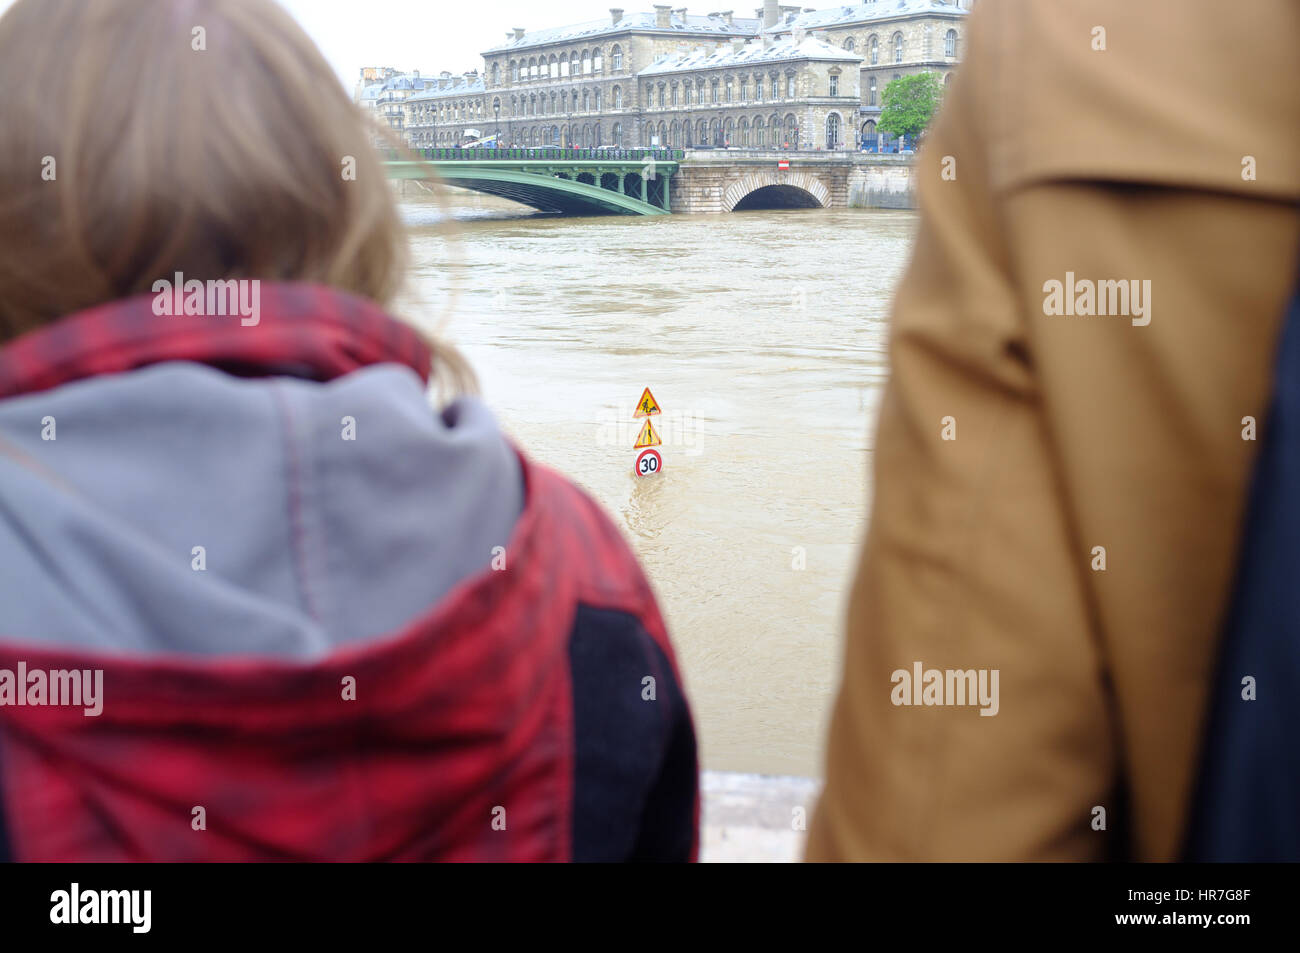 A couple looking at the flooding River Seine, Paris - Stock Image